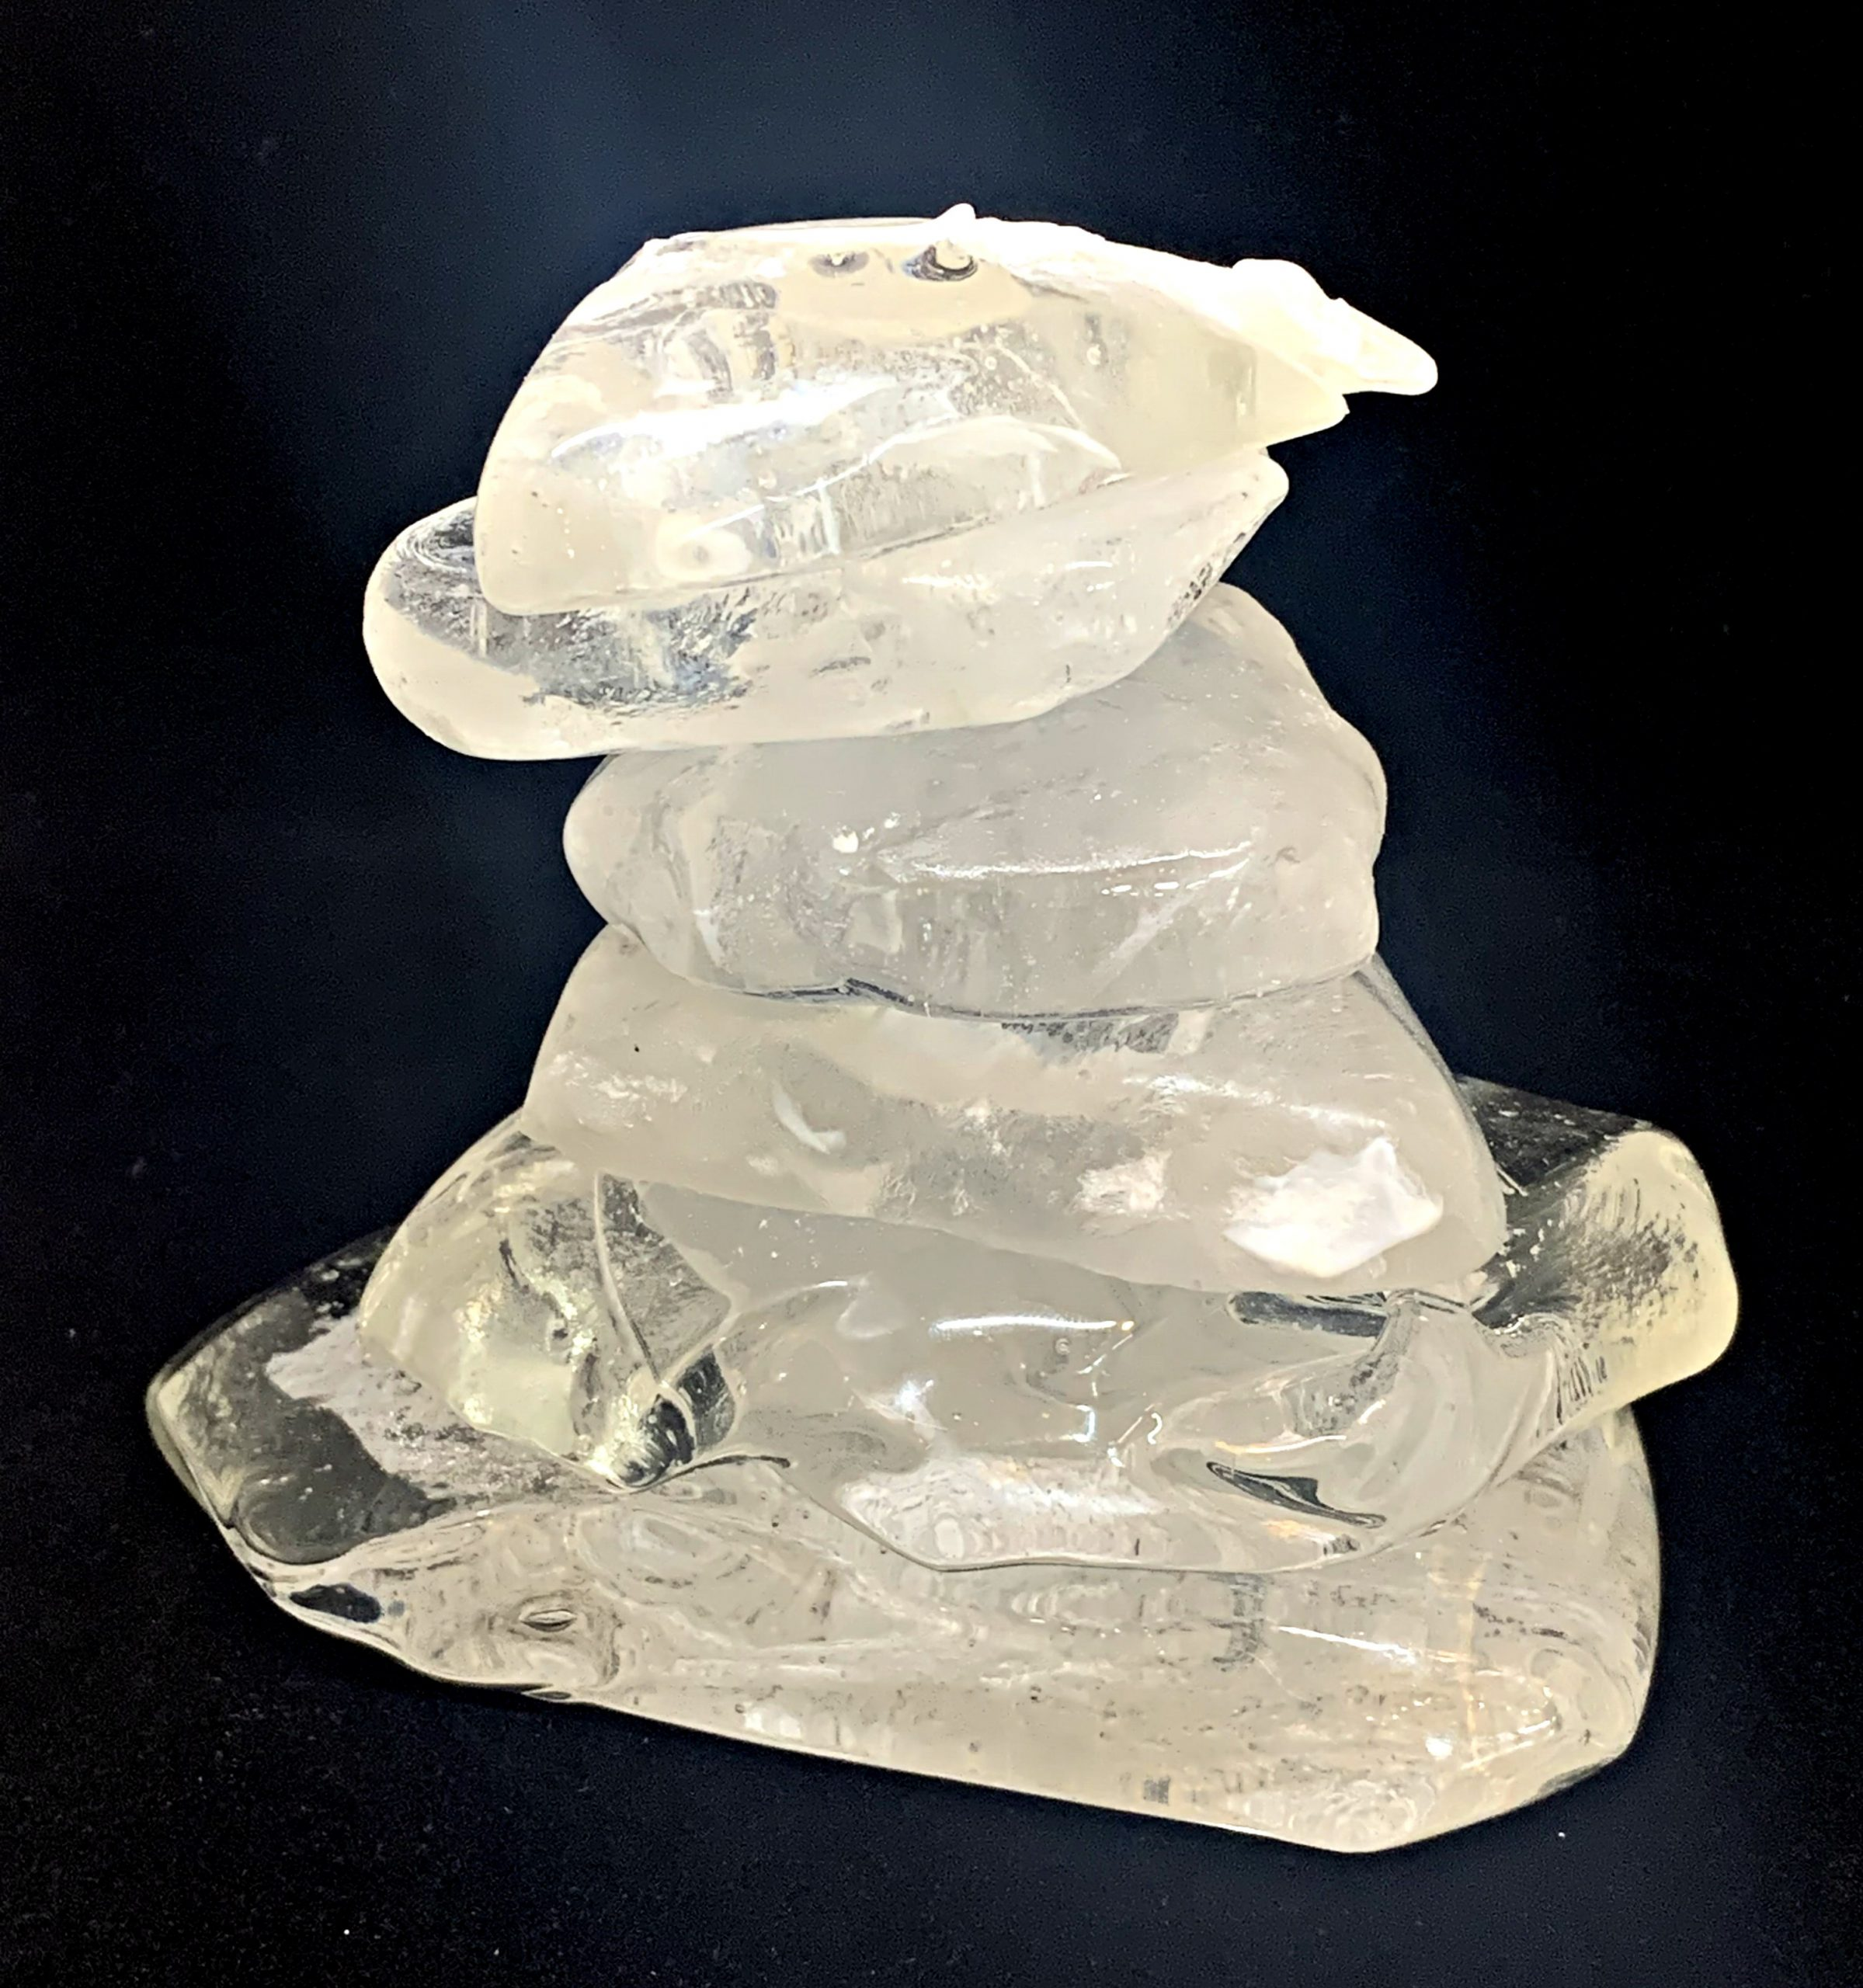 Cast Glass Rocky Mountain Cairn 9 sculpture by Heather Cuell | Effusion Art Gallery + Cast Glass Studio, Invermere BC